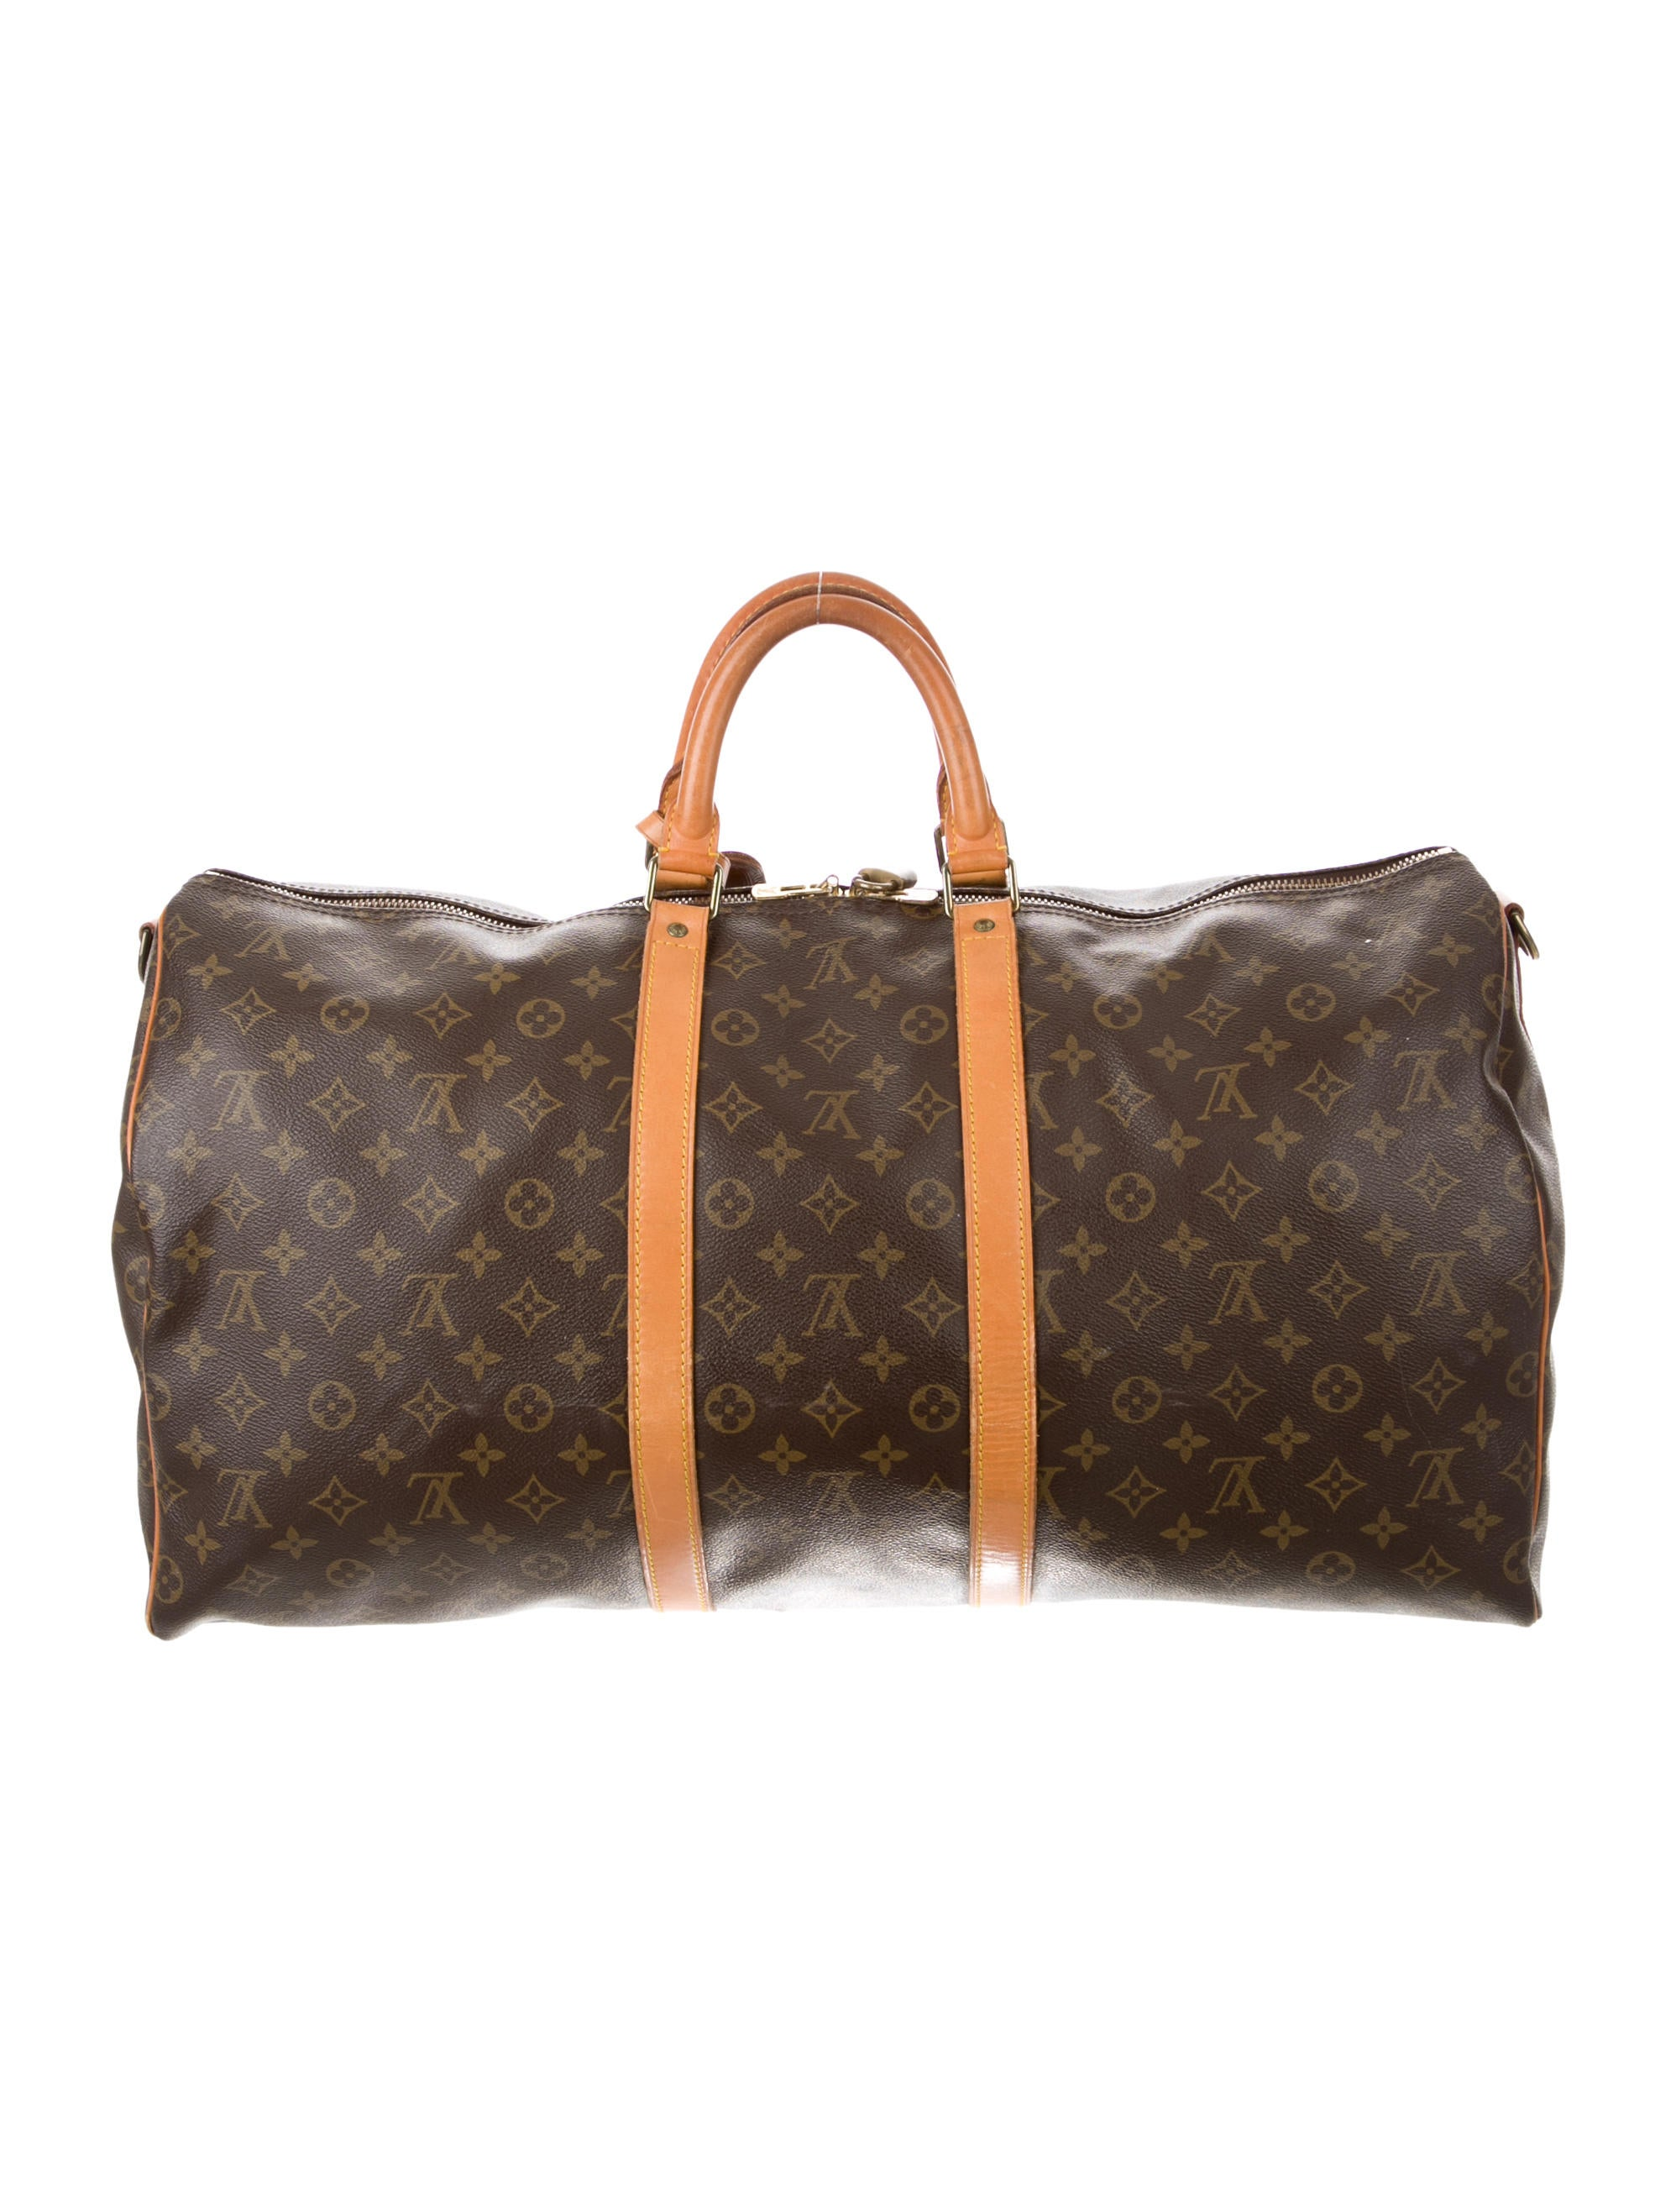 louis vuitton monogram keepall 55 bags lou119349 the. Black Bedroom Furniture Sets. Home Design Ideas